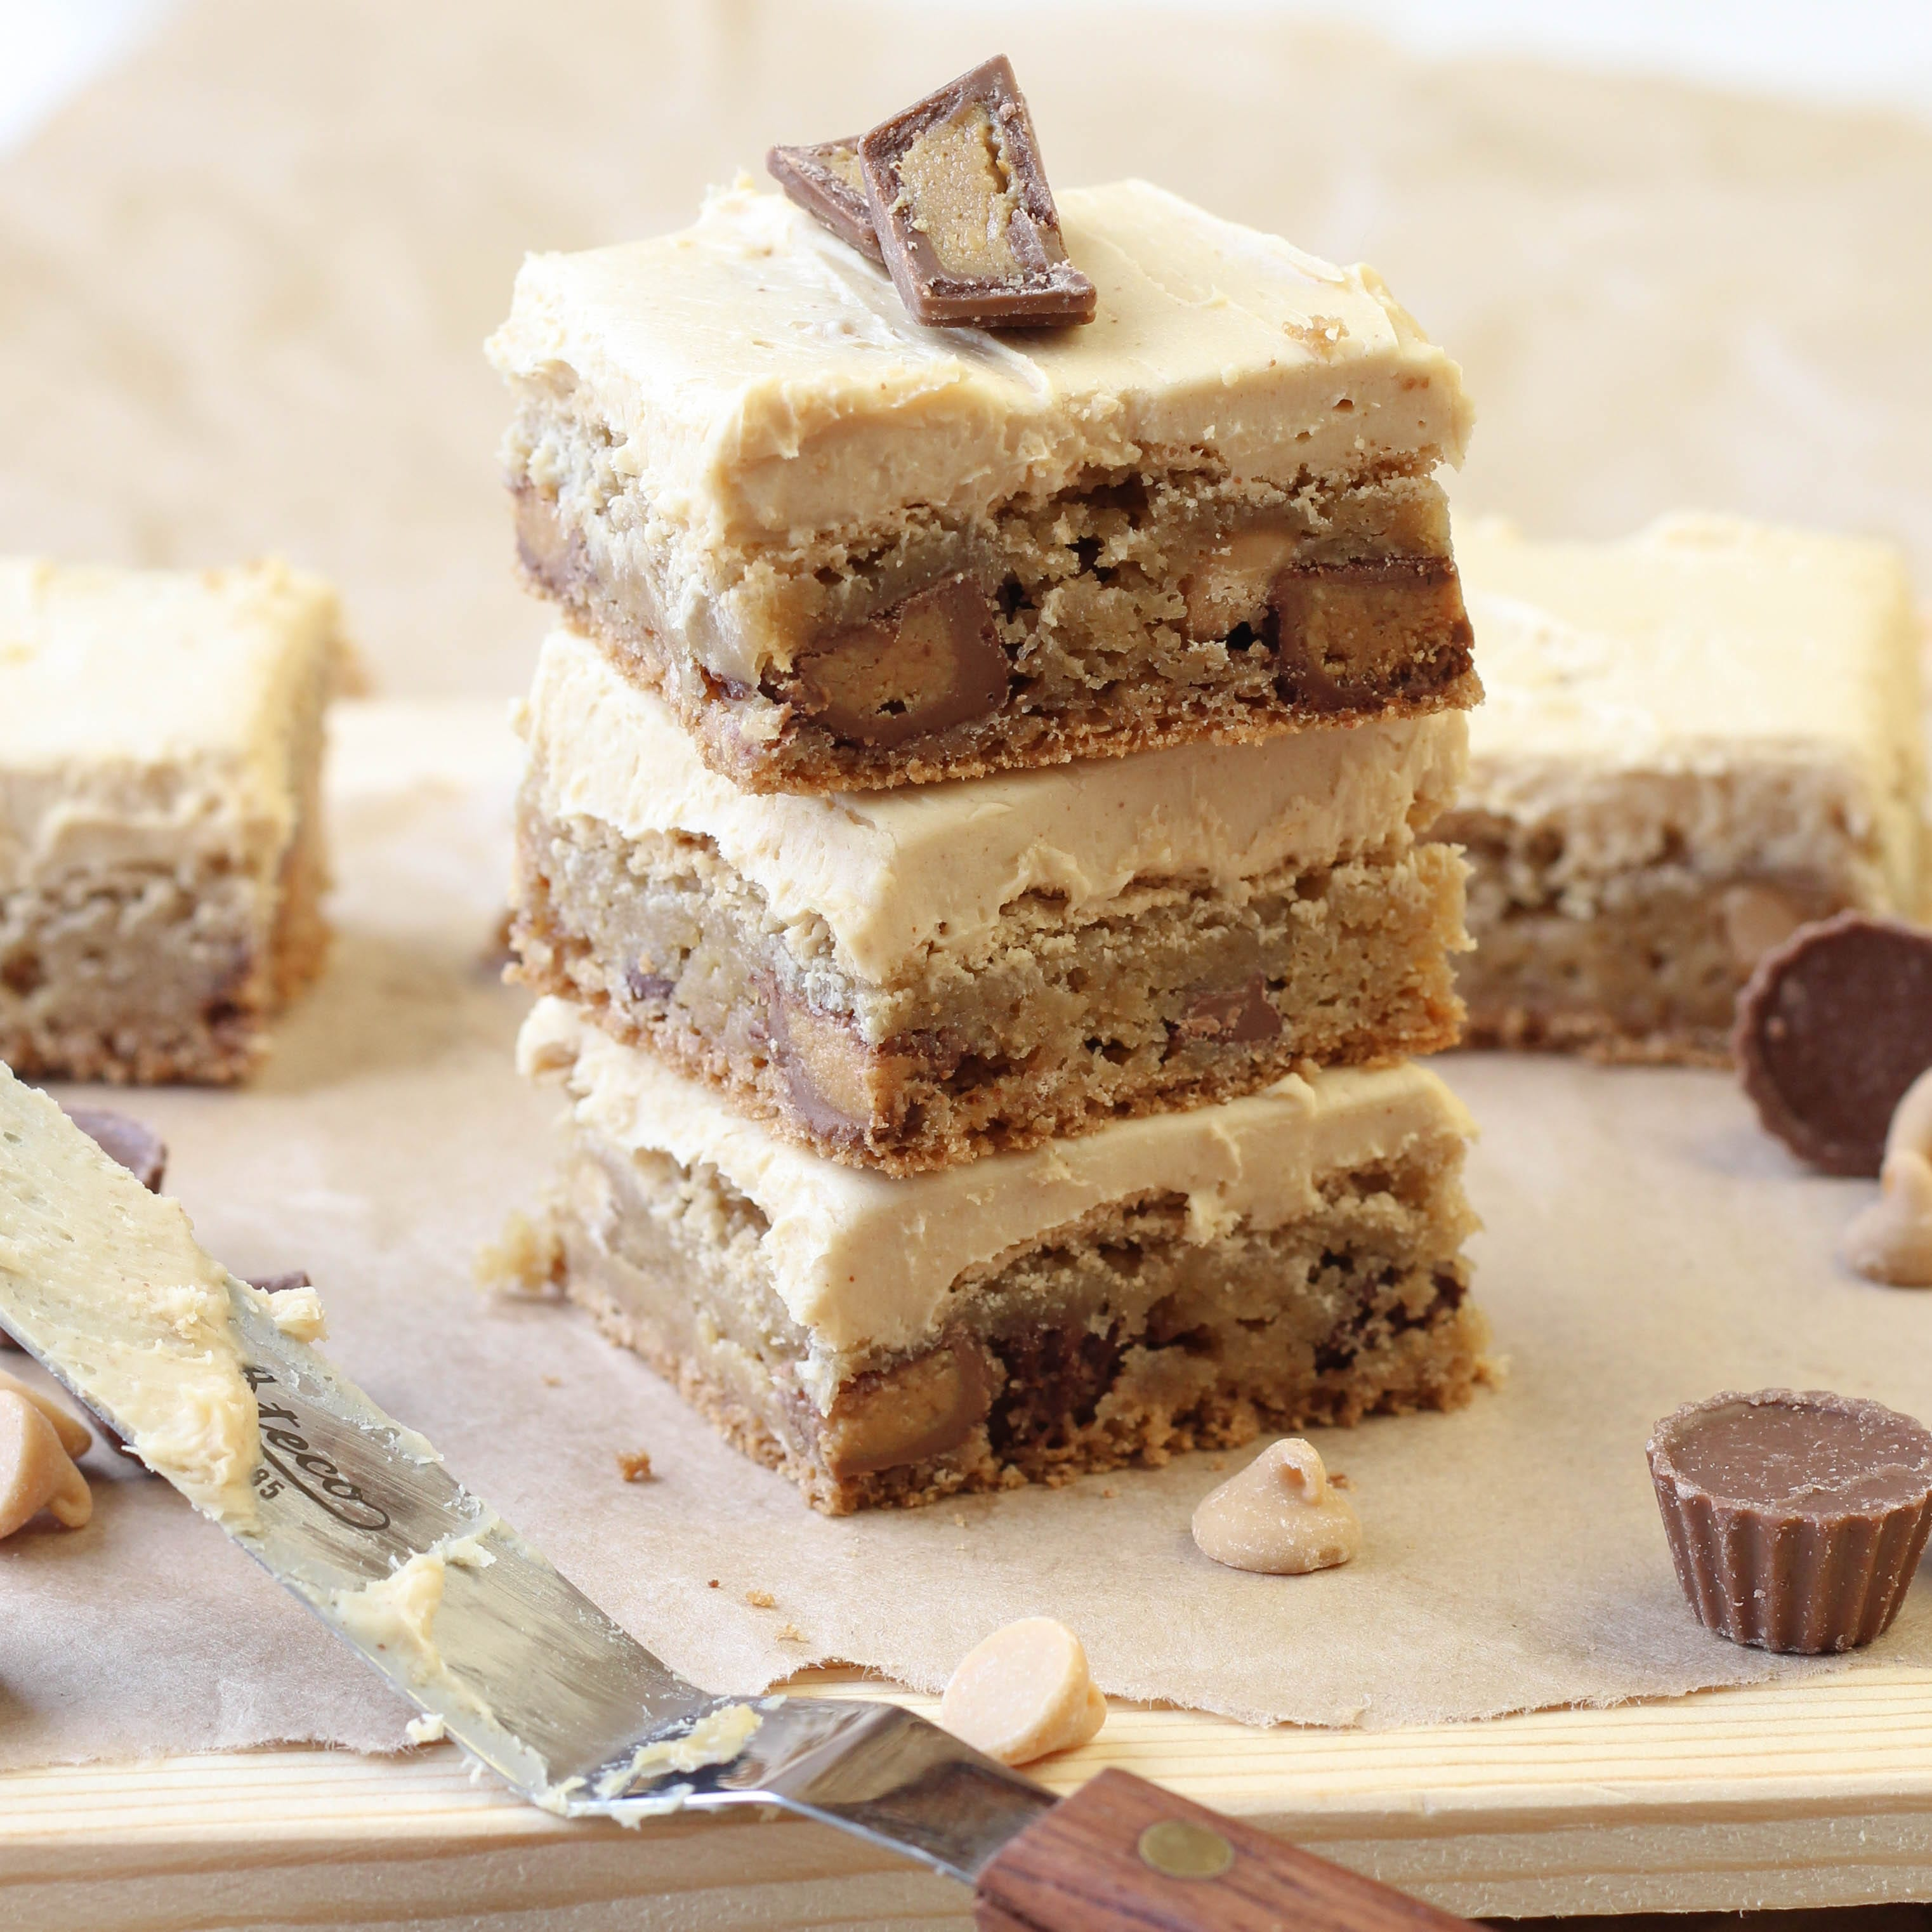 ... yourselves. These Reese's Peanut Butter Blondies are insanely good